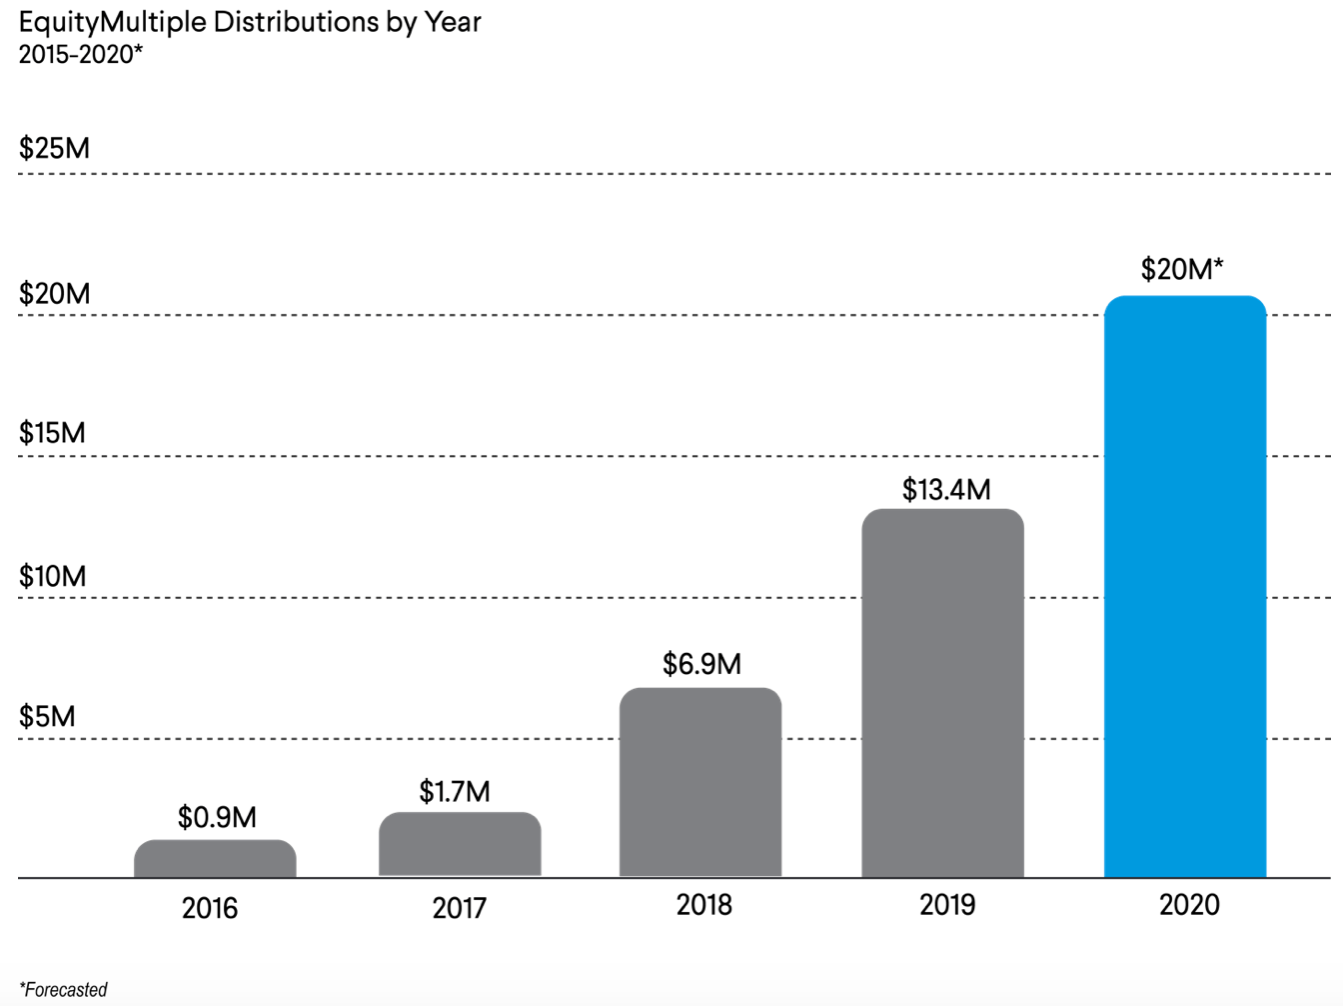 EquityMultiple Capital Distributions By Year 2015 - 2020